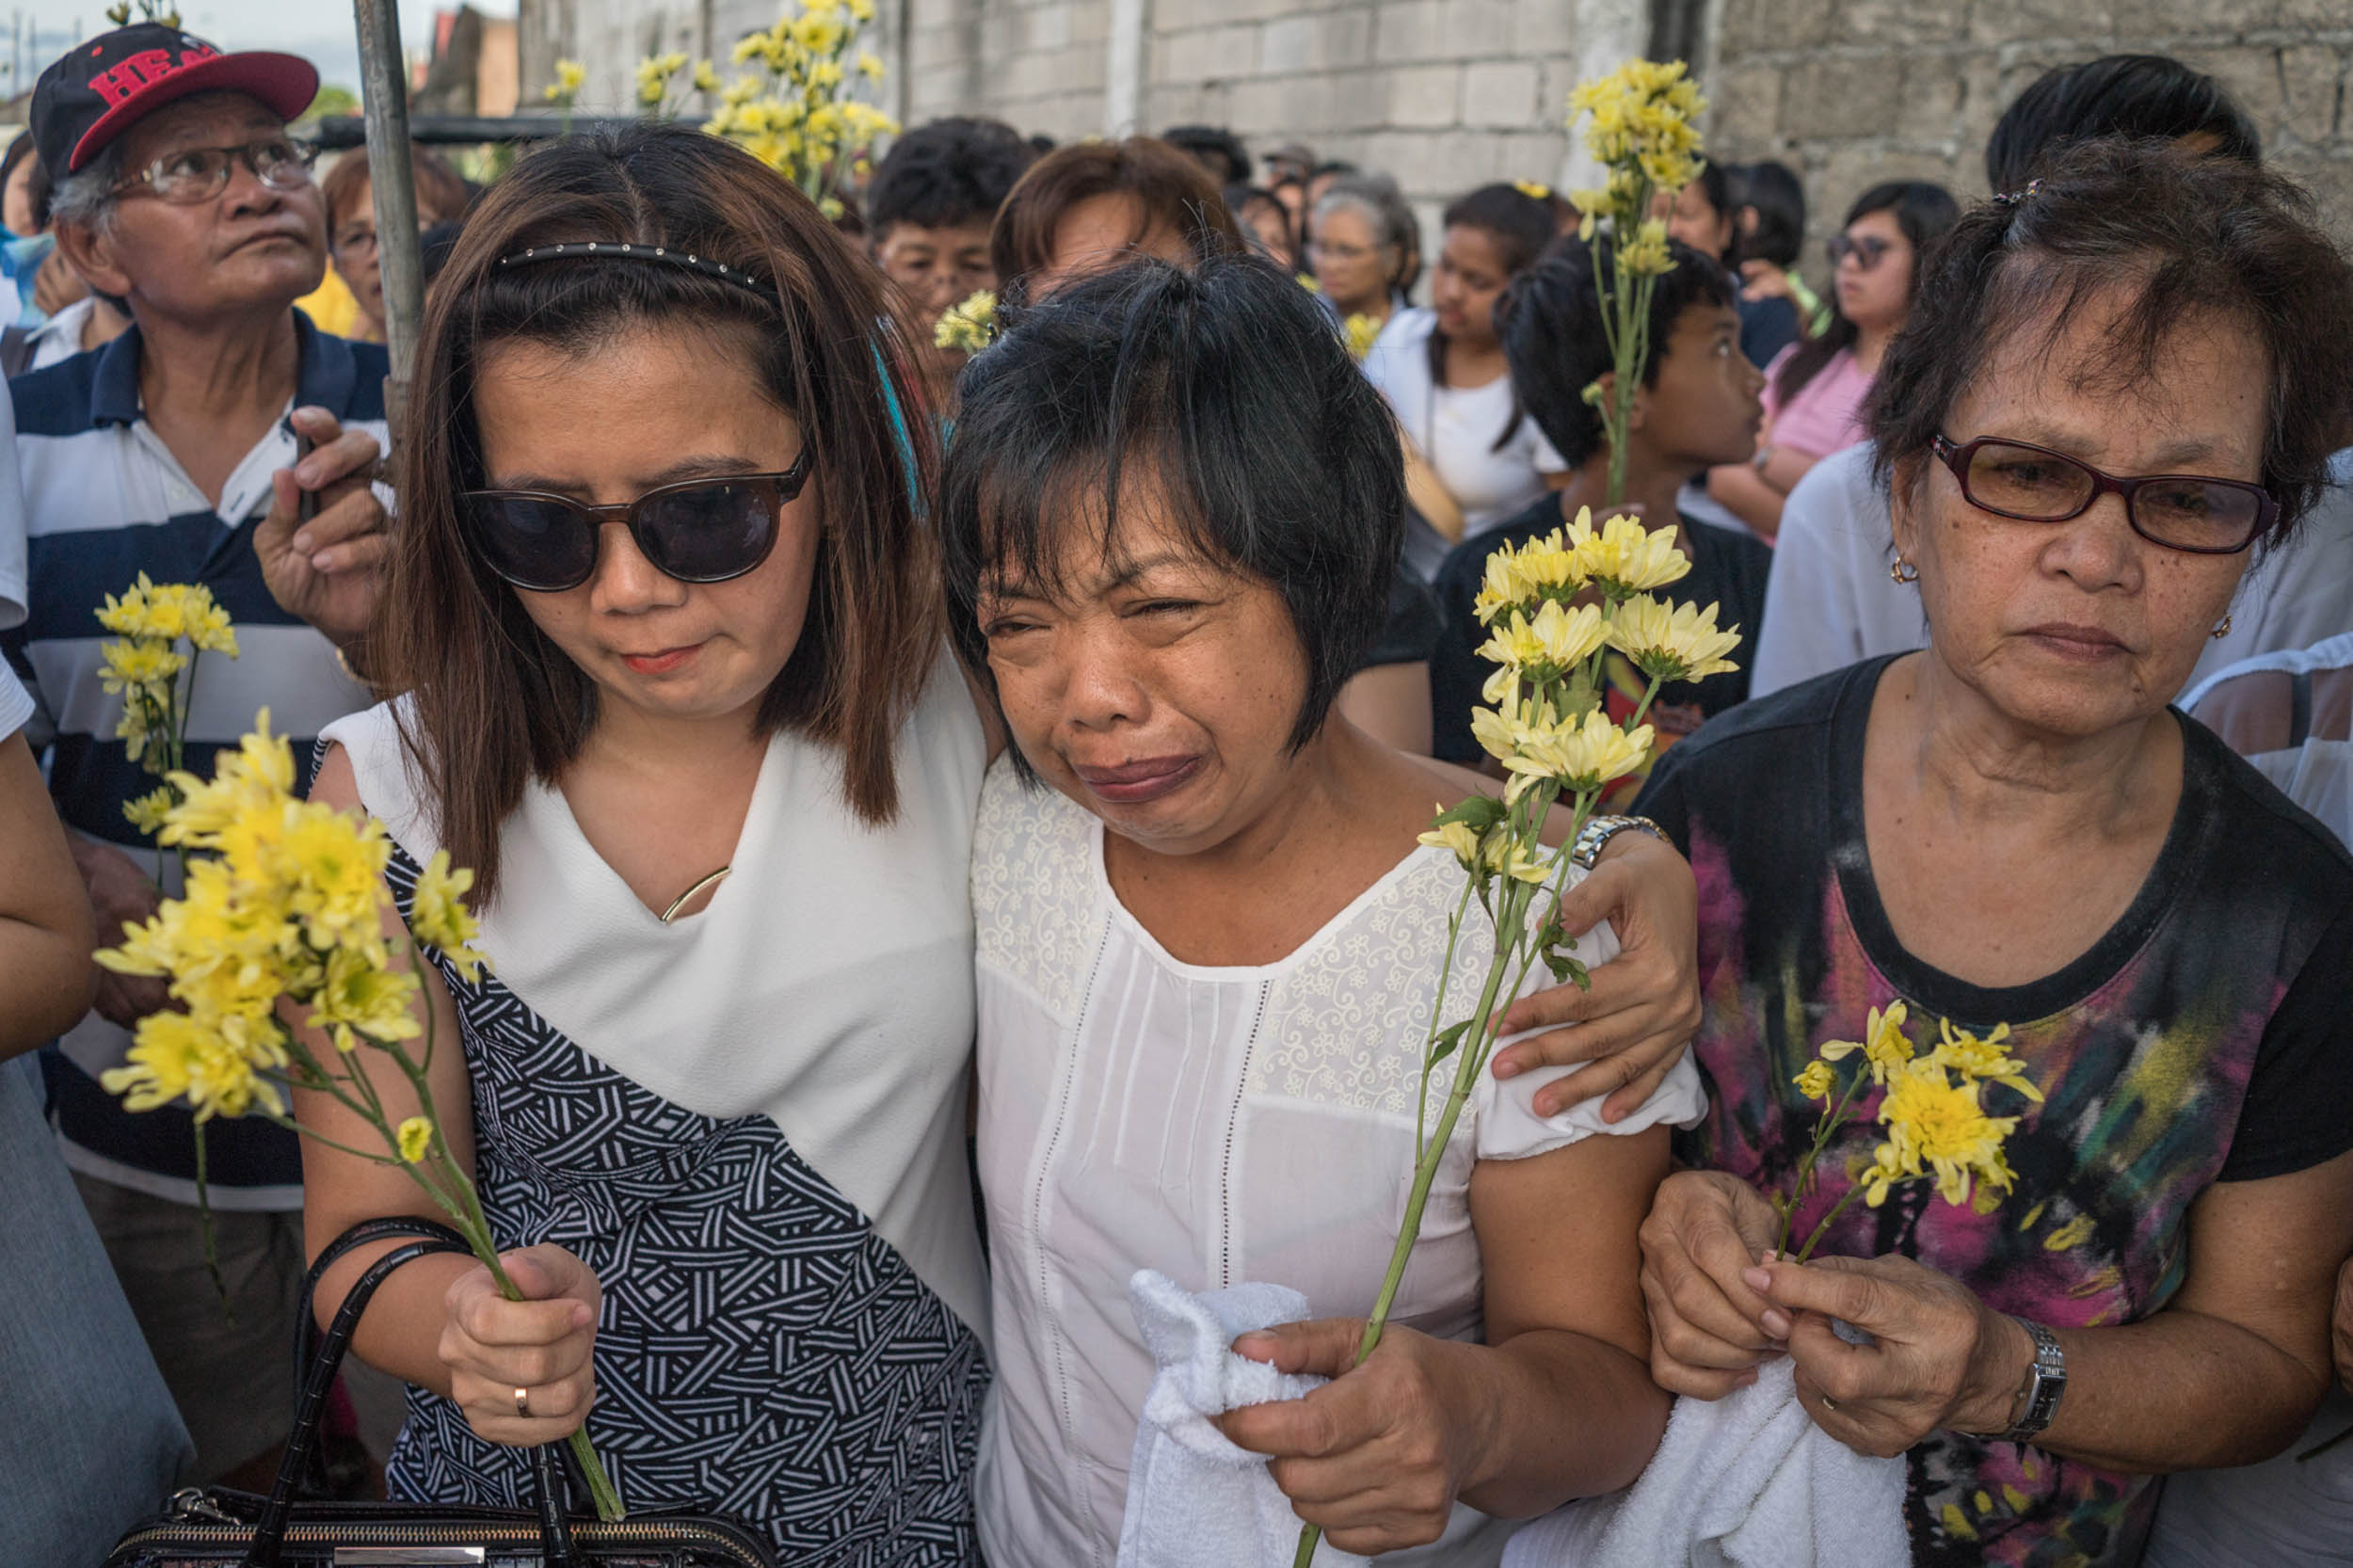 Some of the Filipinos who go abroad with dreams come home in caskets. The mother (center) of Jessica Catiis weeps at her funeral. Catiis was a domestic worker in Saudi Arabia who allegedly died by suicide. Her body was sent back seven months later